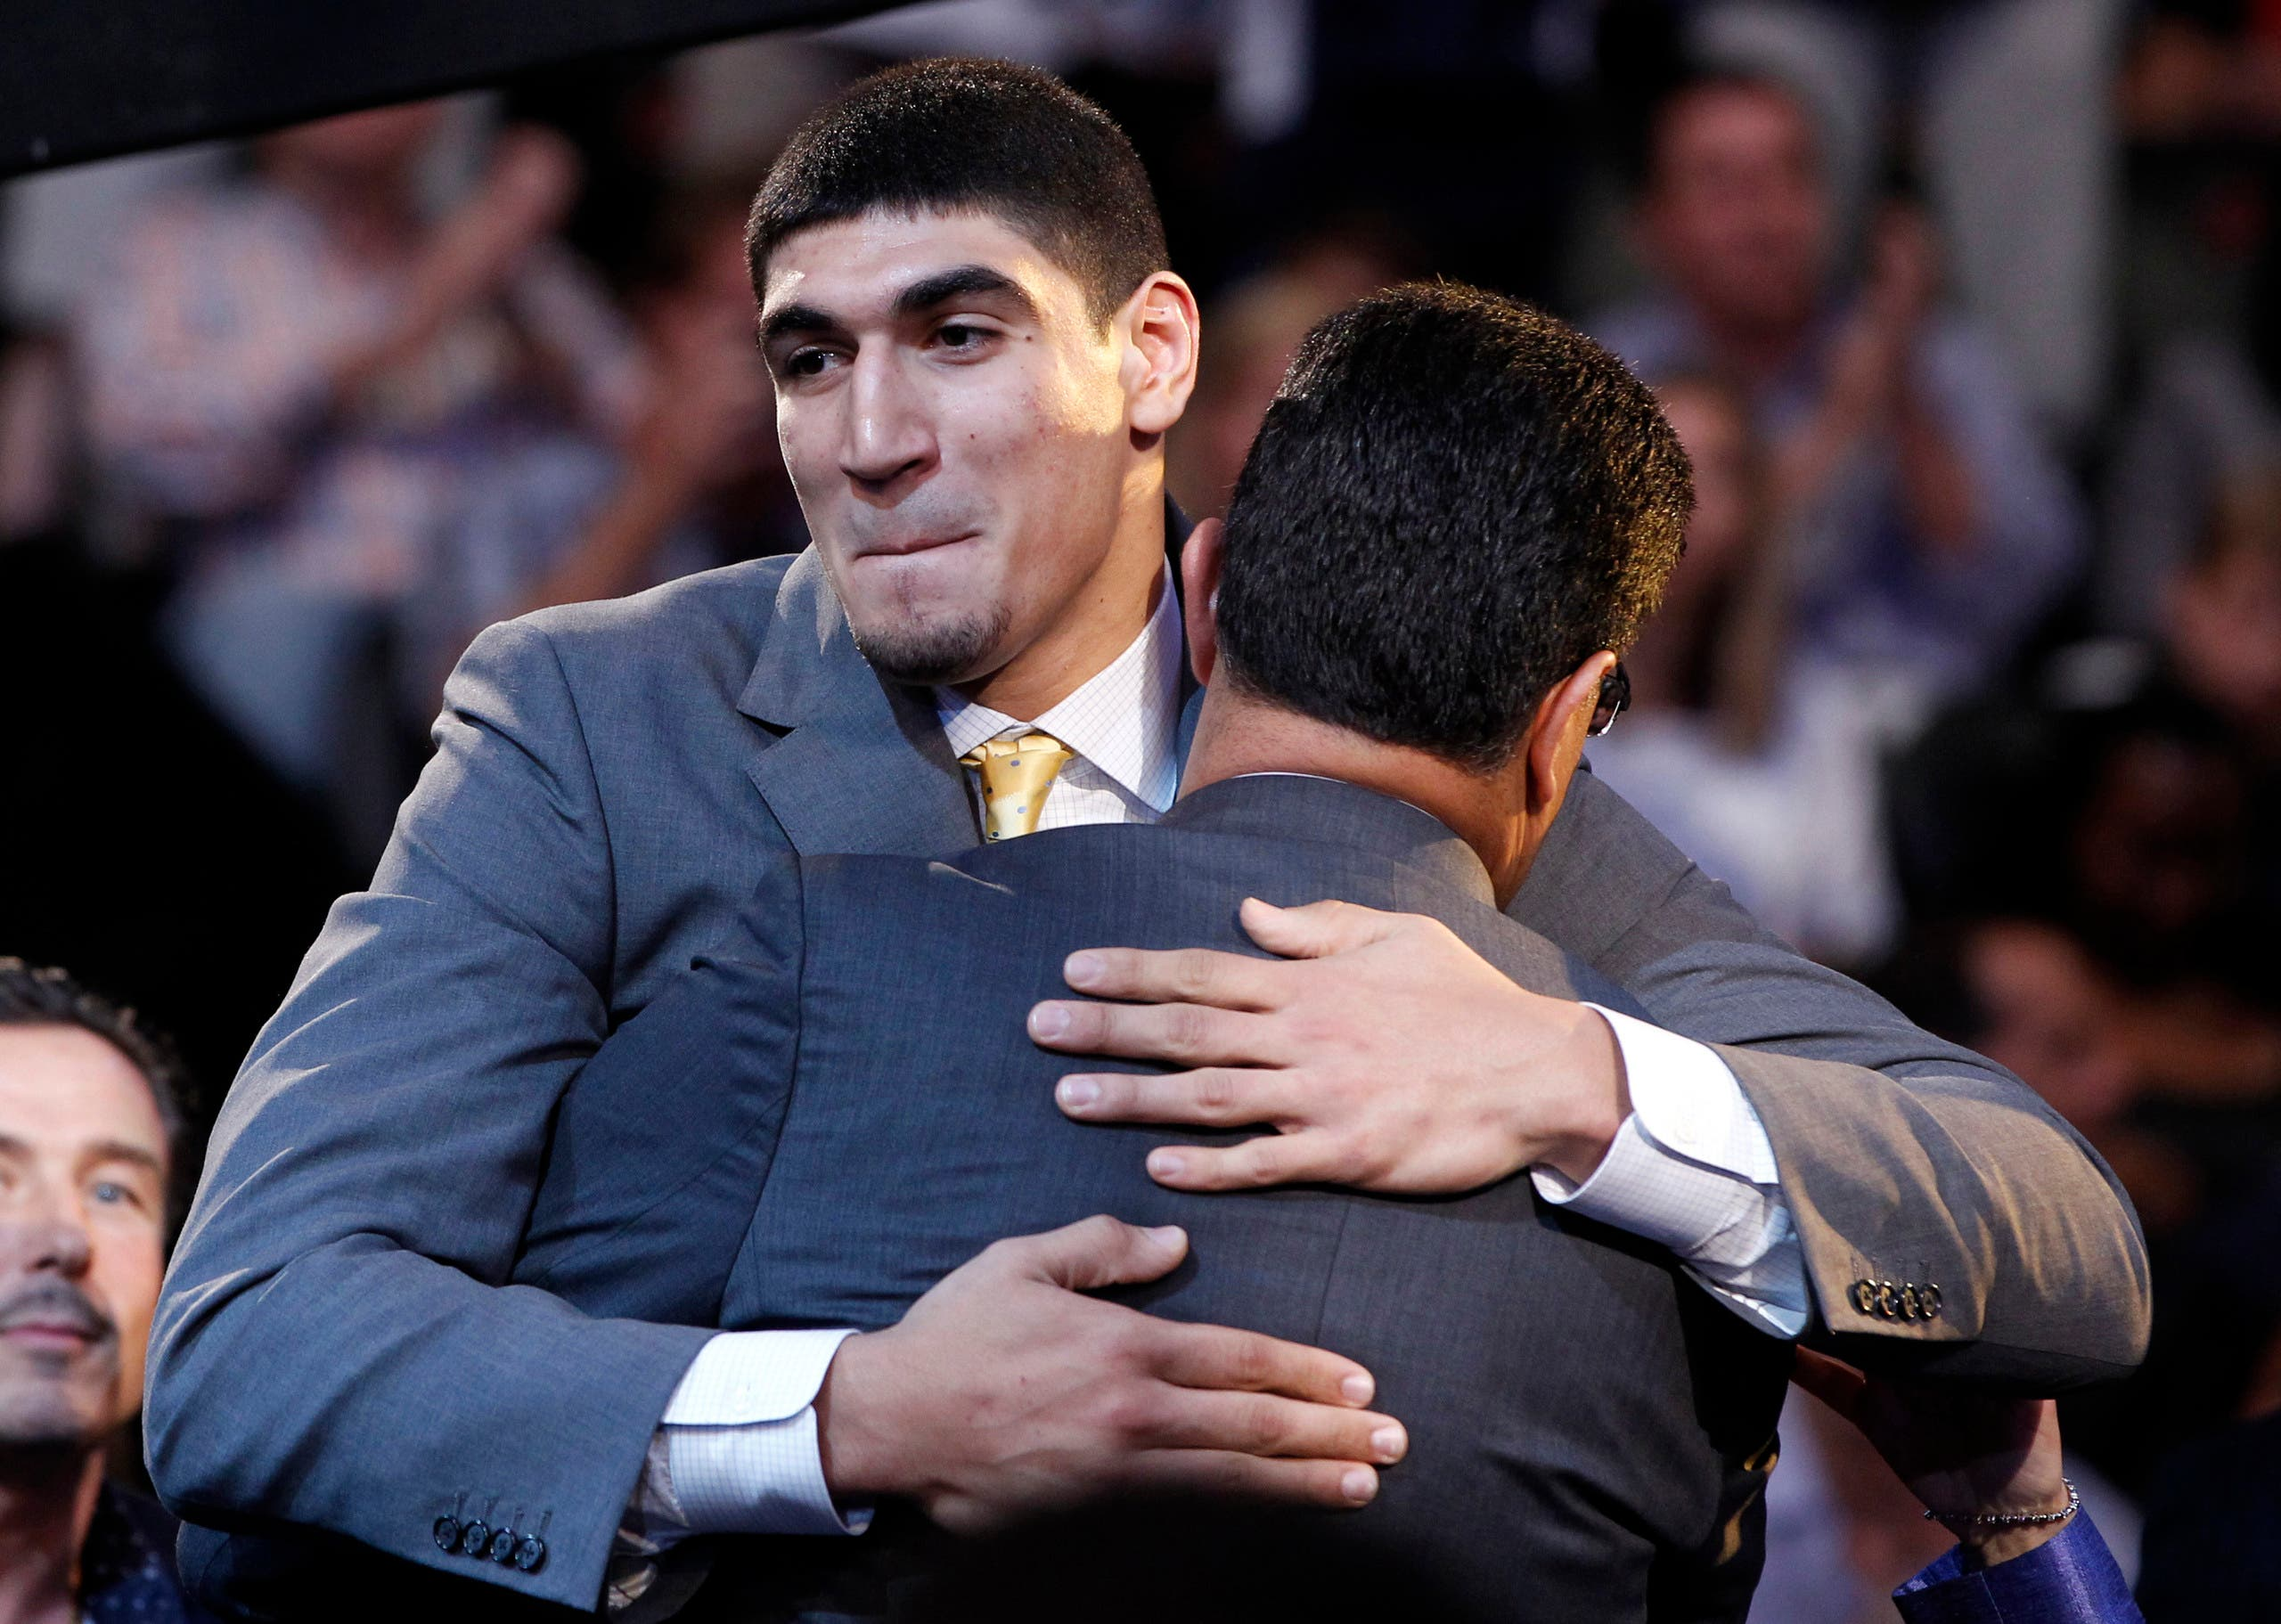 Enes Kanter hugs his father after being selected in the 2011 NBA Draft in Newark, New Jersey on June 23, 2011. (Reuters)